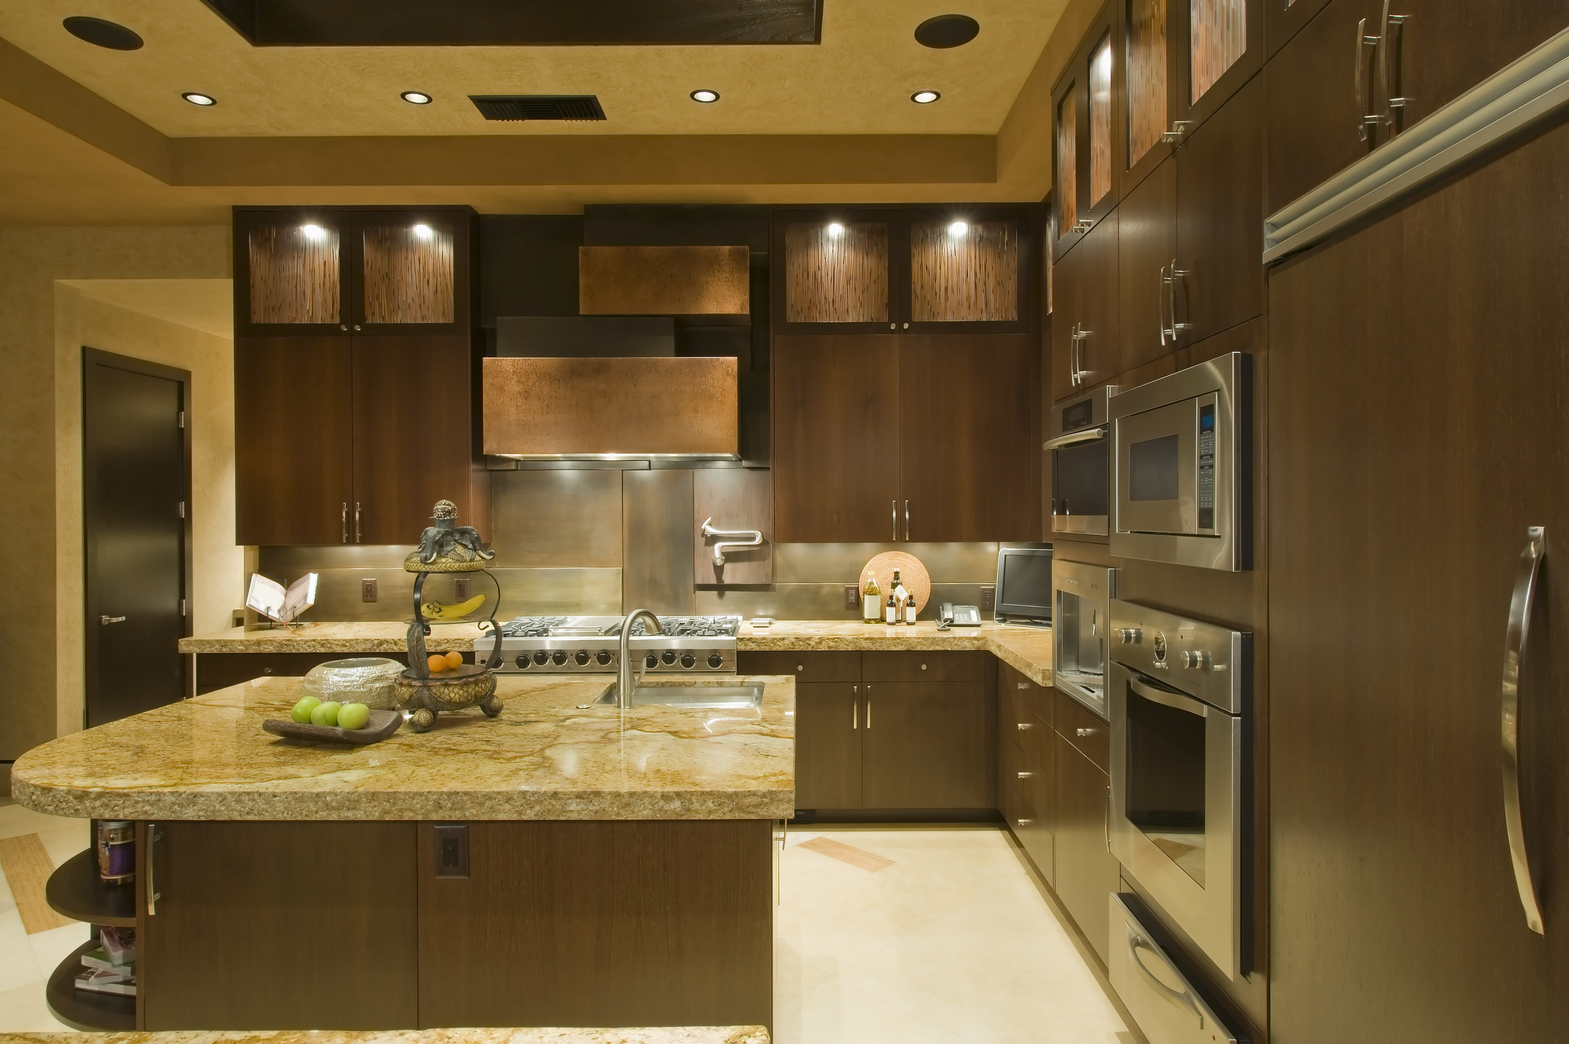 dc kitchen remodeling trends for remodeled kitchens kitchen remodeling dc